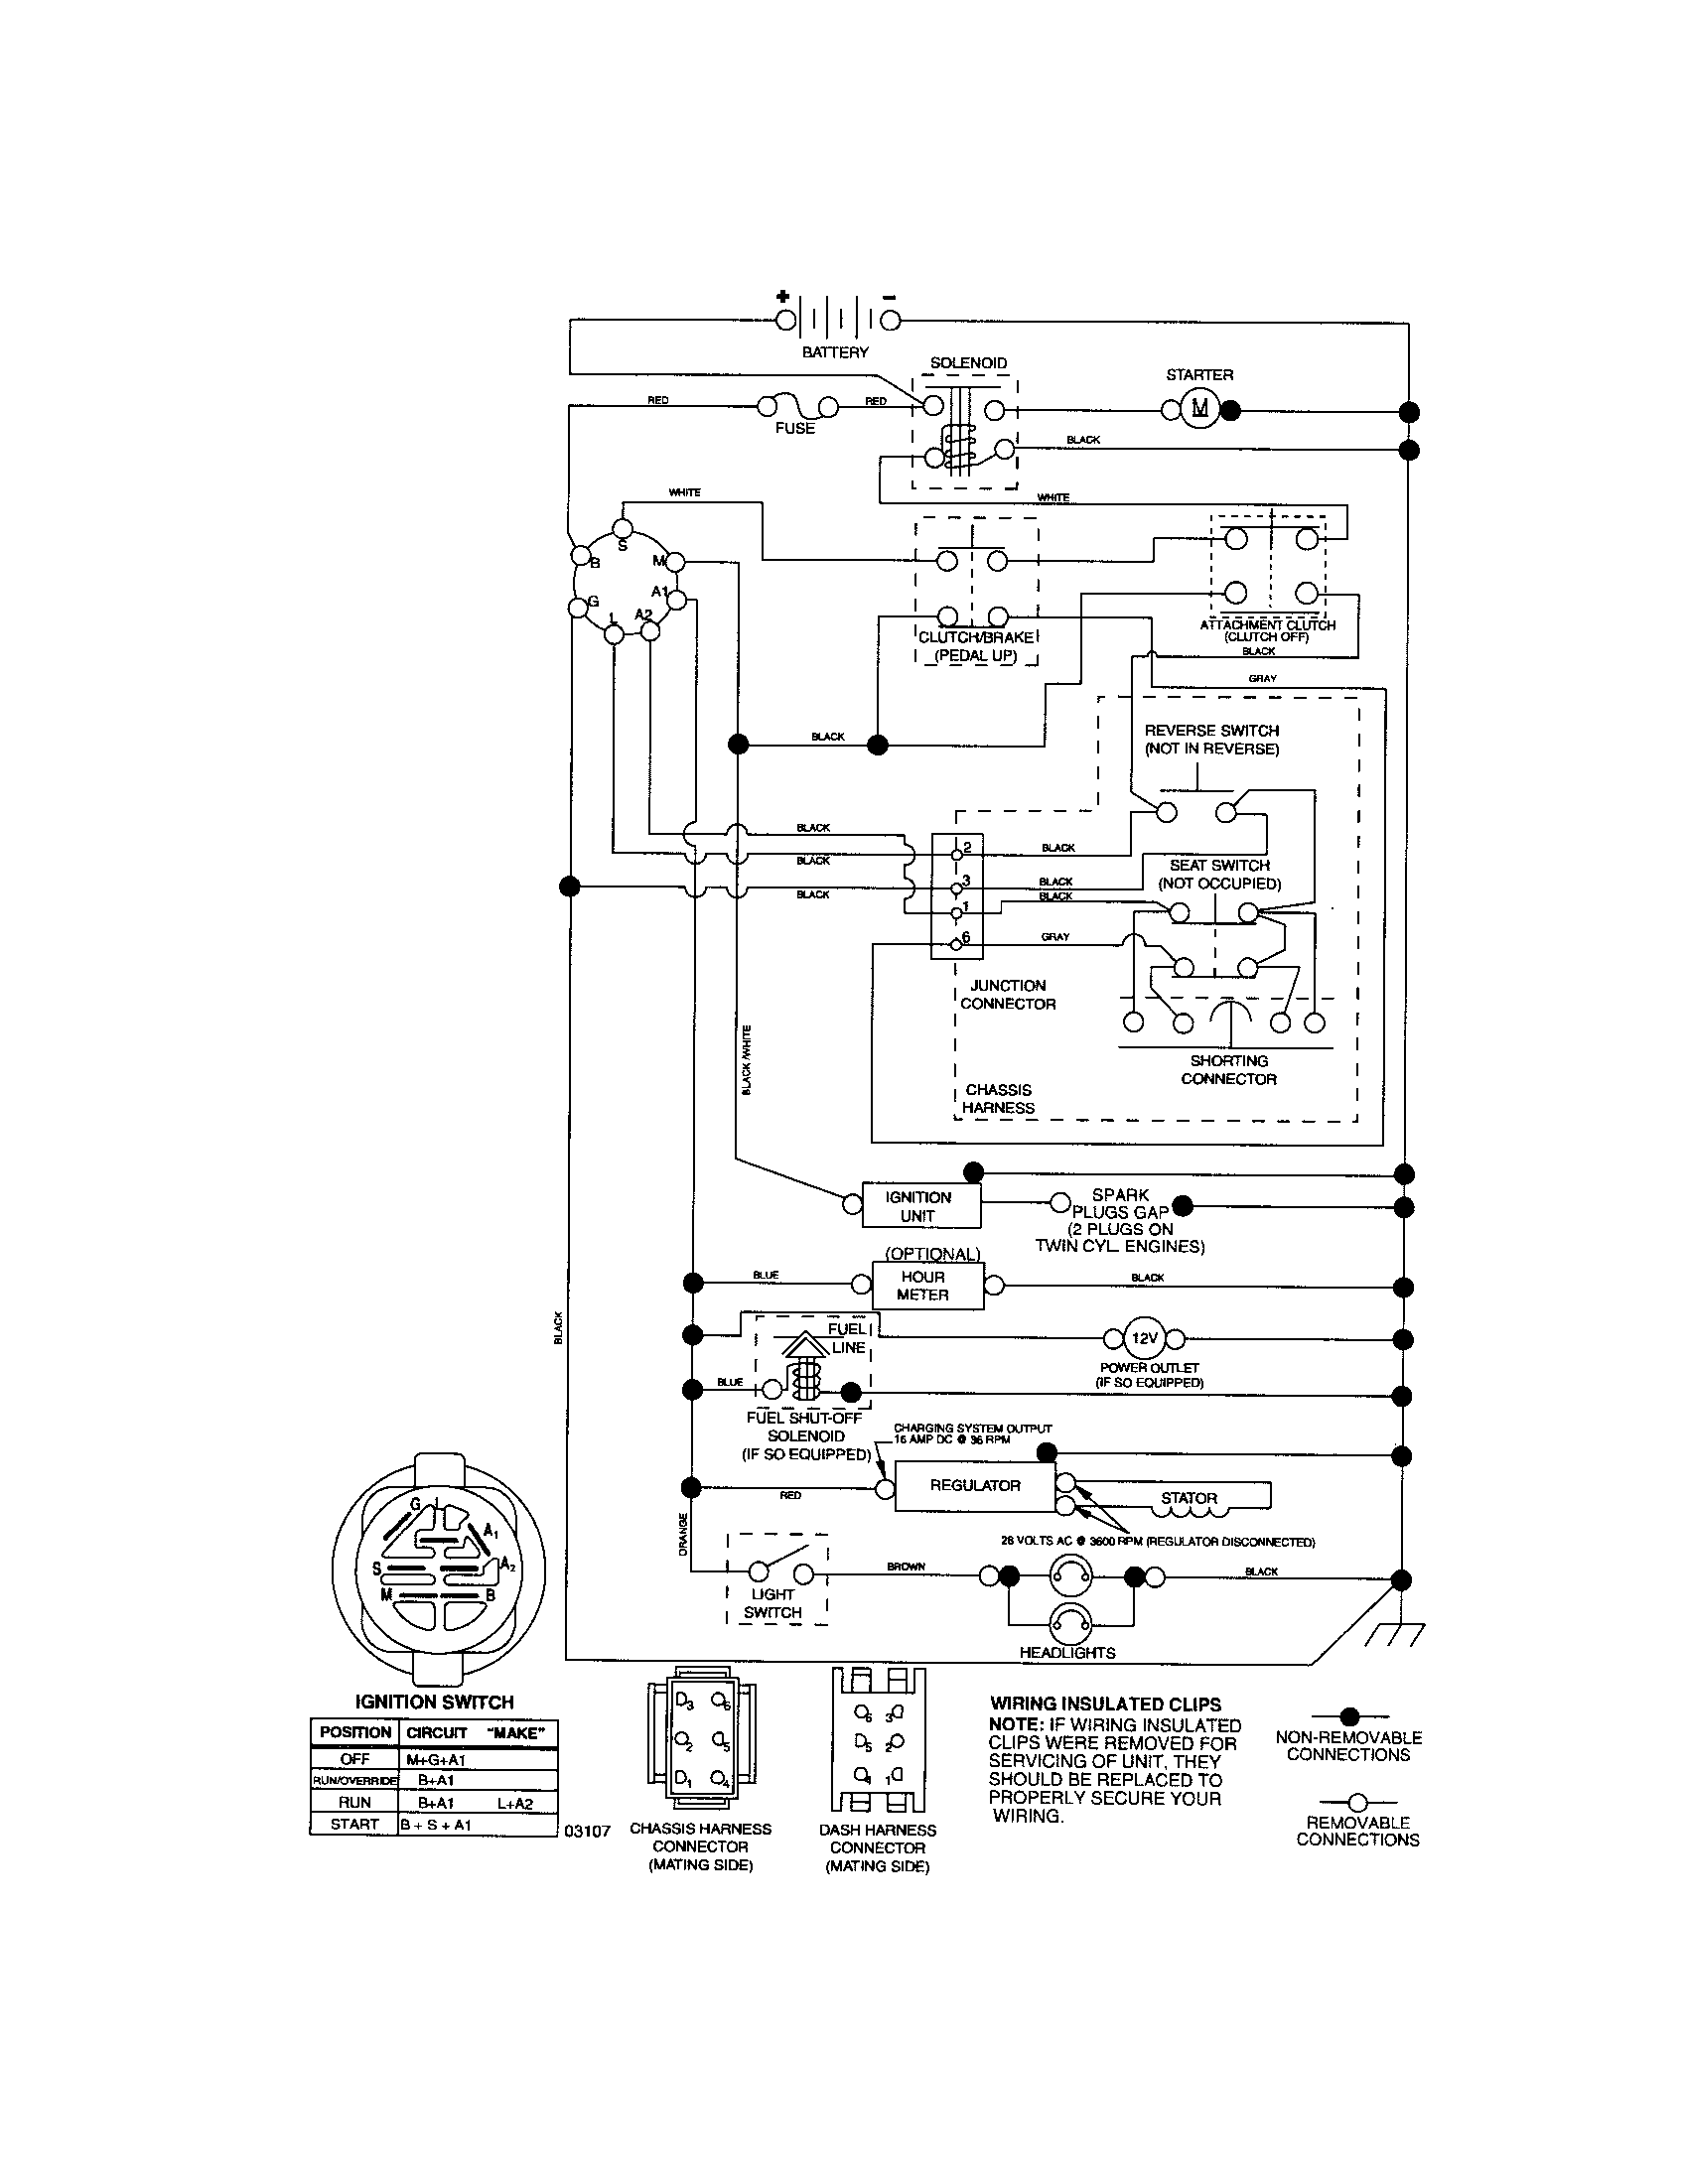 6af5f1447fd13c8443376822ddc1e105 craftsman riding mower electrical diagram wiring diagram Universal Wiring Harness Diagram at n-0.co